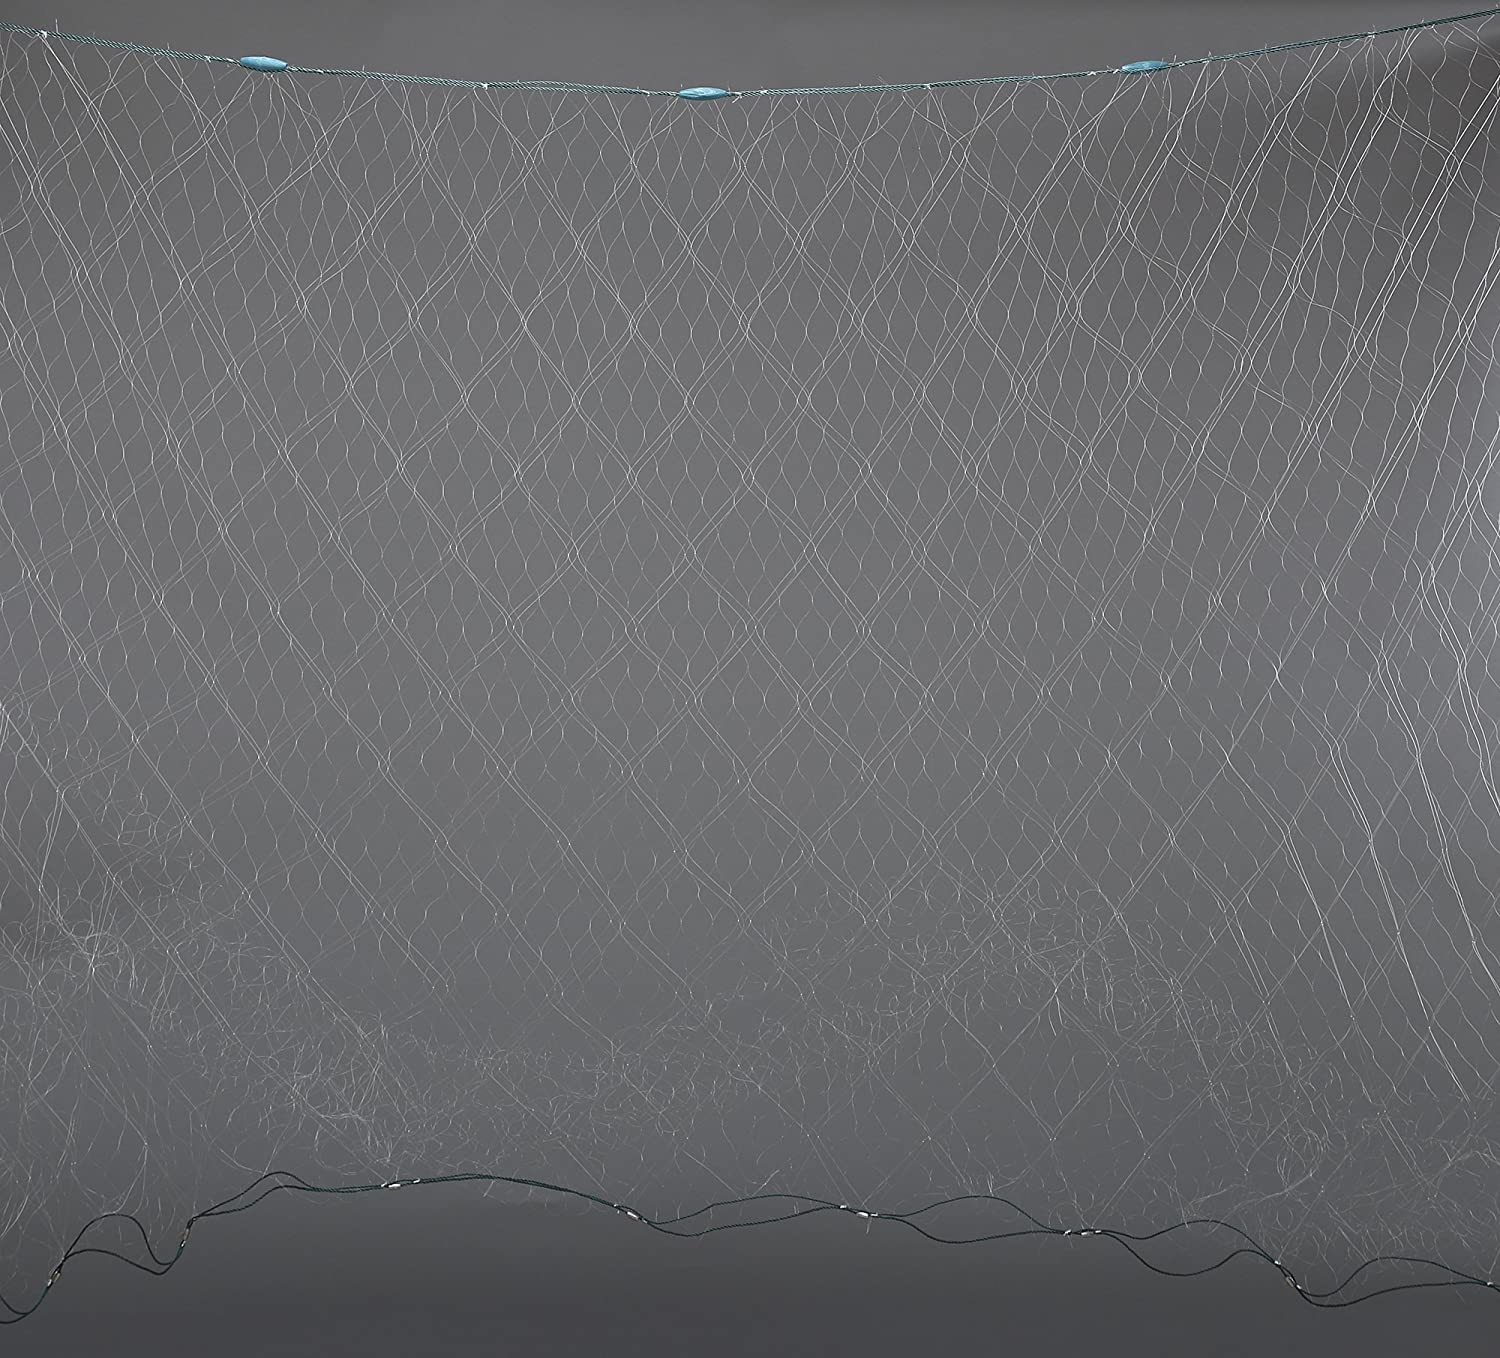 3 Layers Fishing Gill Net Well Handmade Seine Net Ready for Use 6x100 Night Cat Completed Finished Trammel Fishing Net